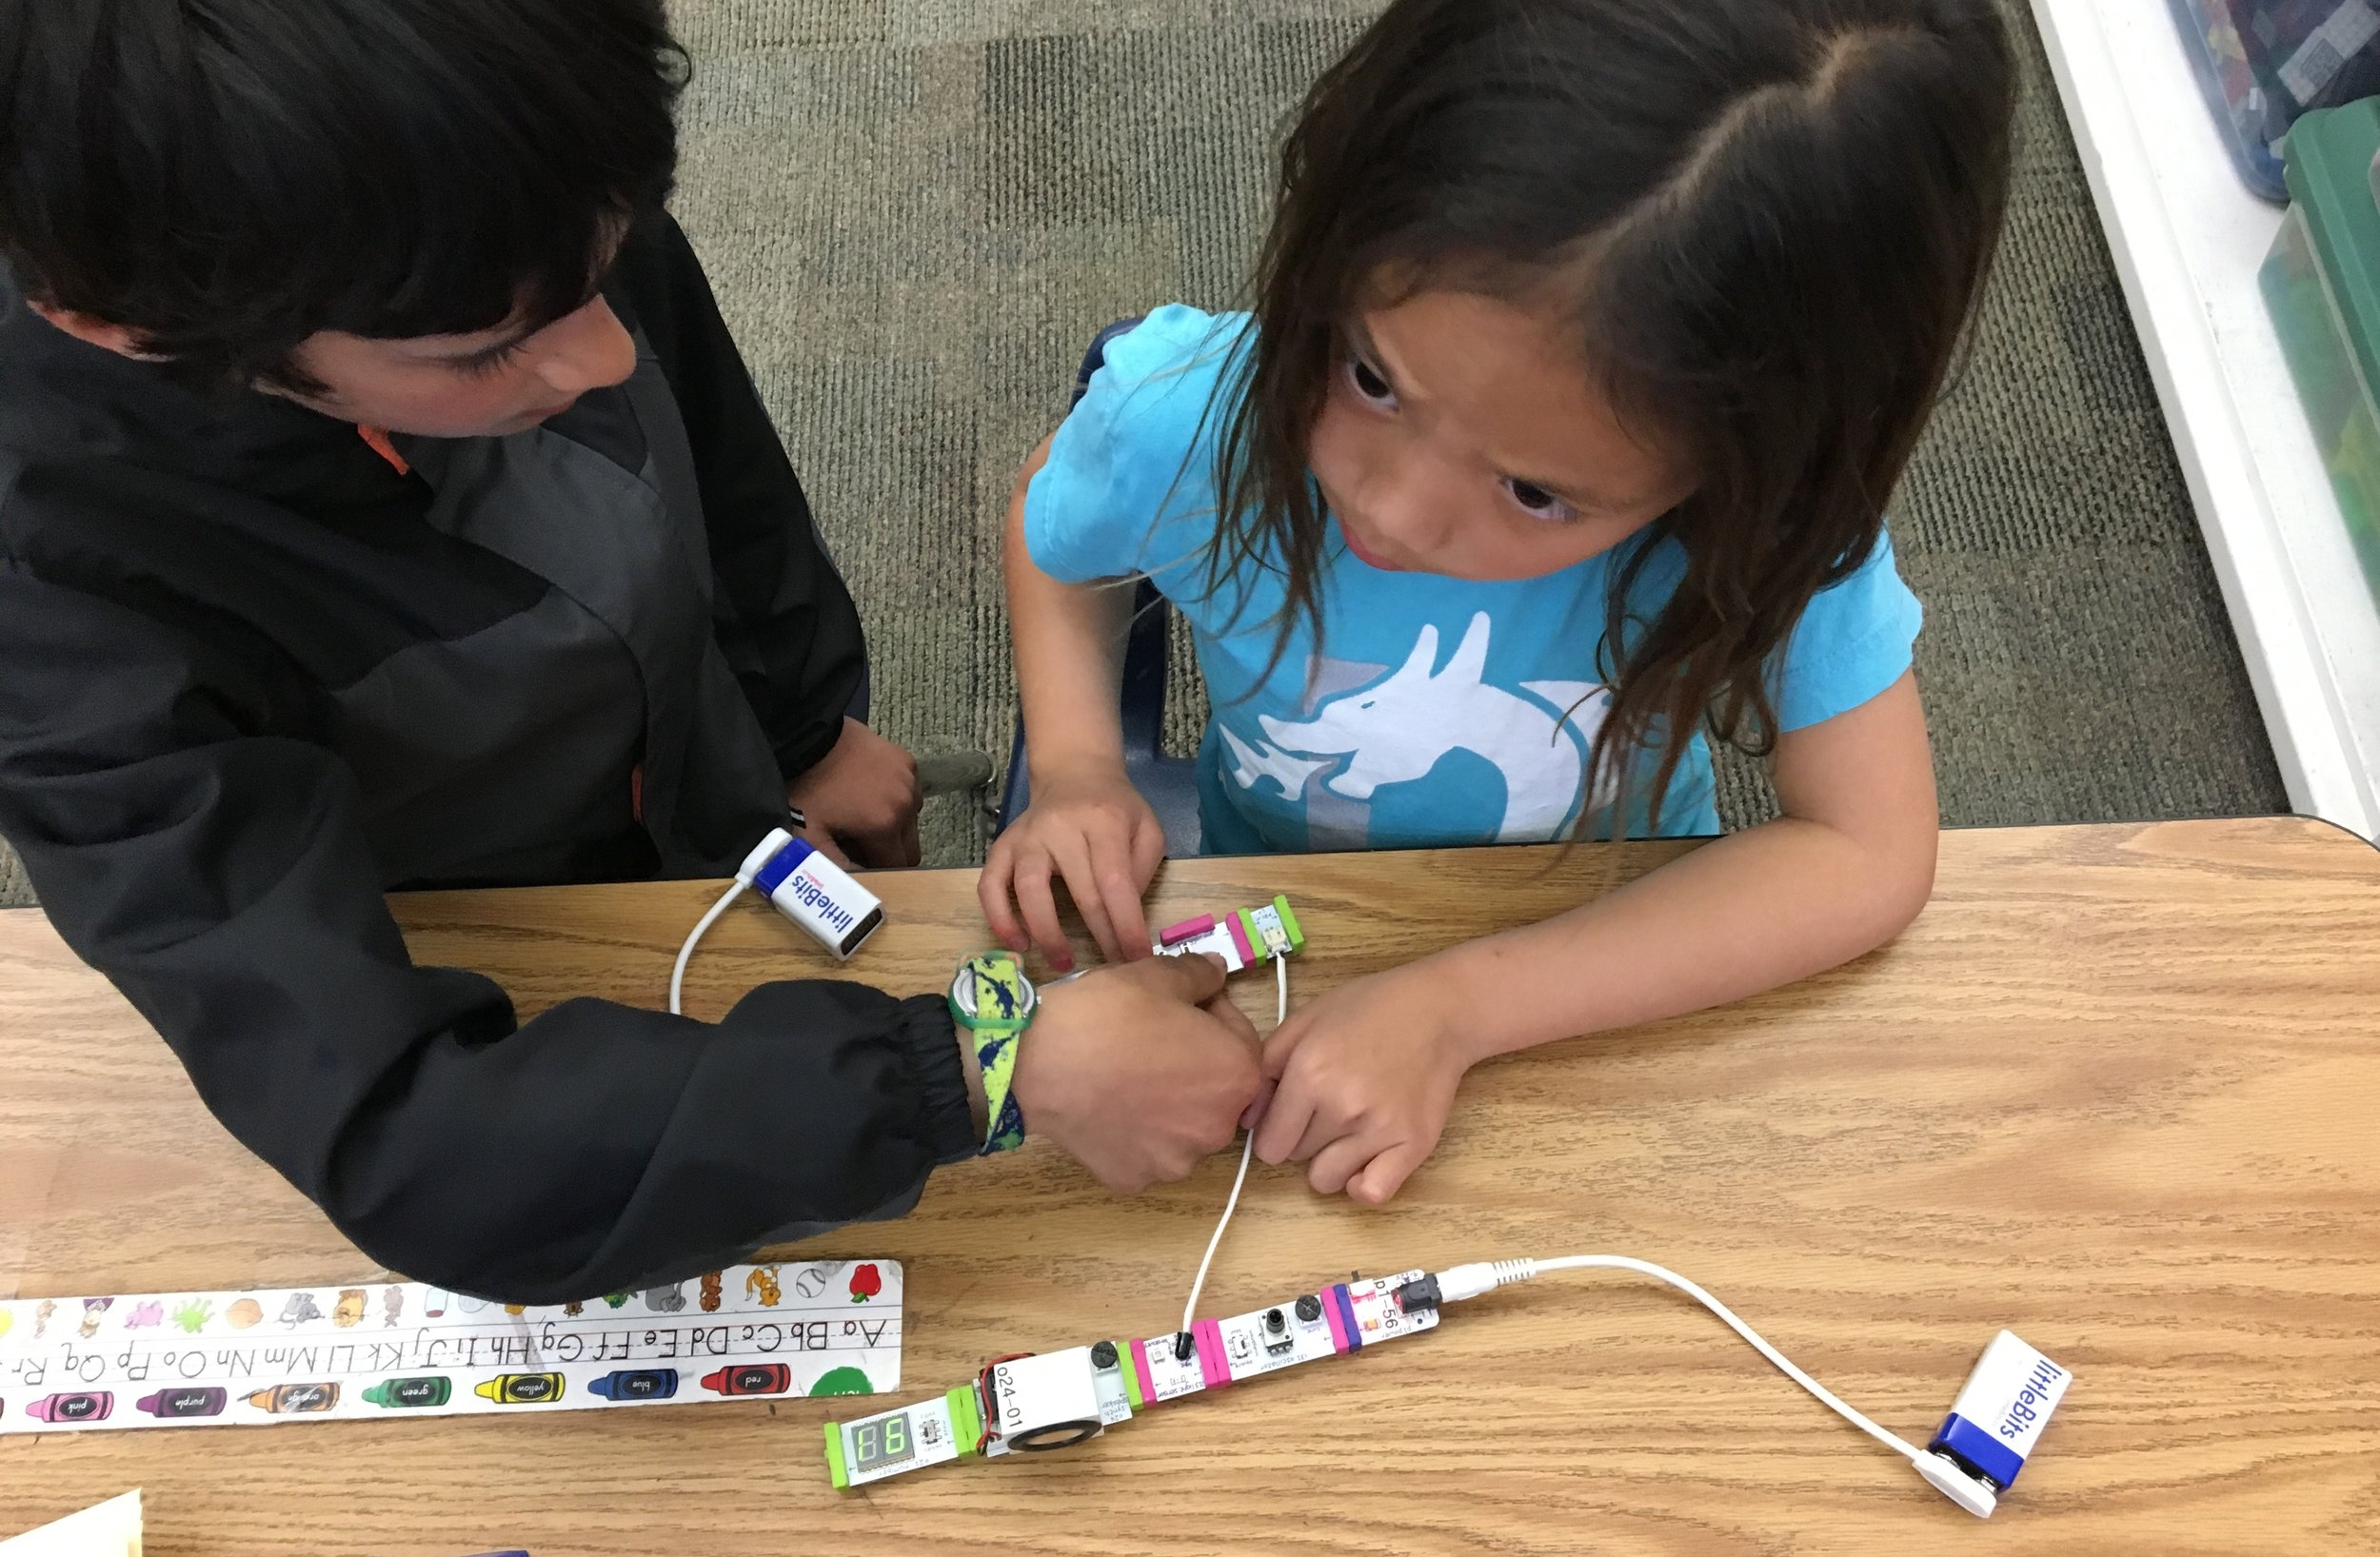 Students learning circuit components with hands-on activities